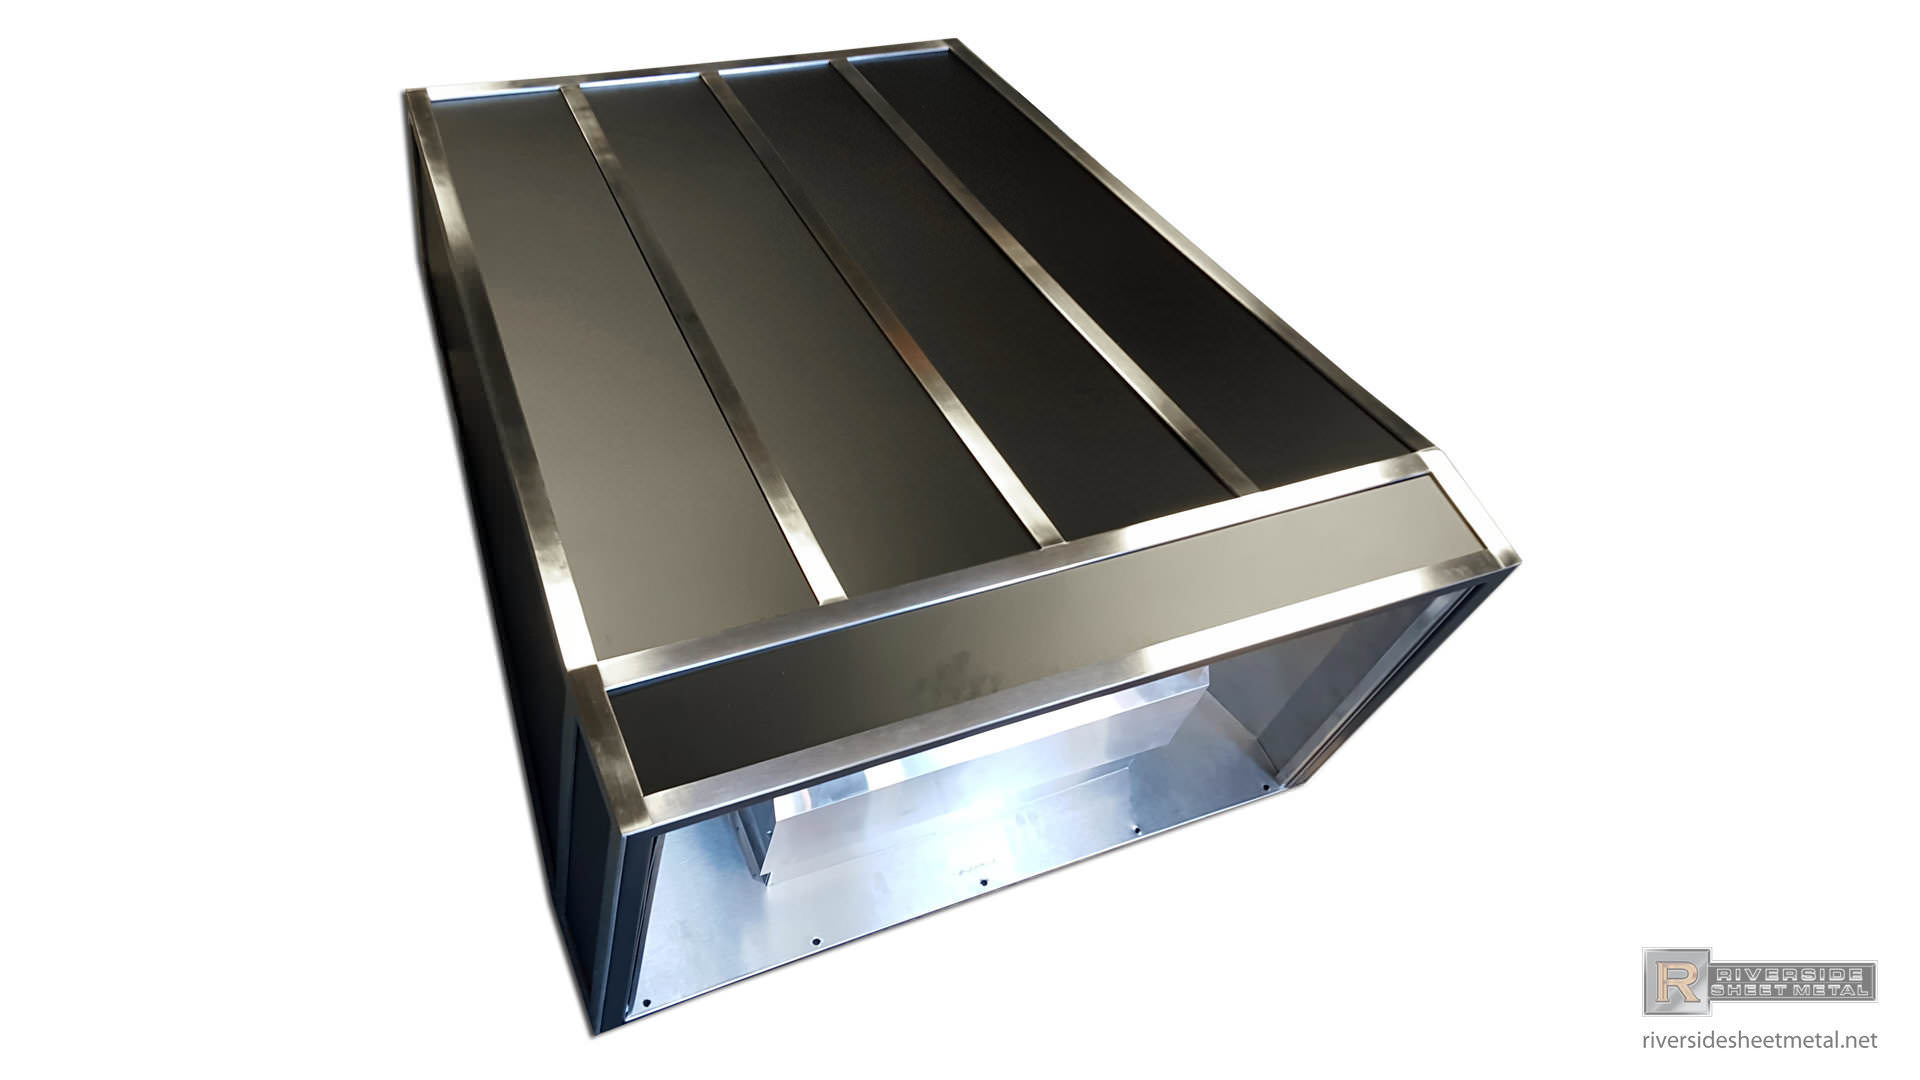 Stainless Steel Exhaust Hoods ~ Hood vents range hoods copper stainless steel and zinc